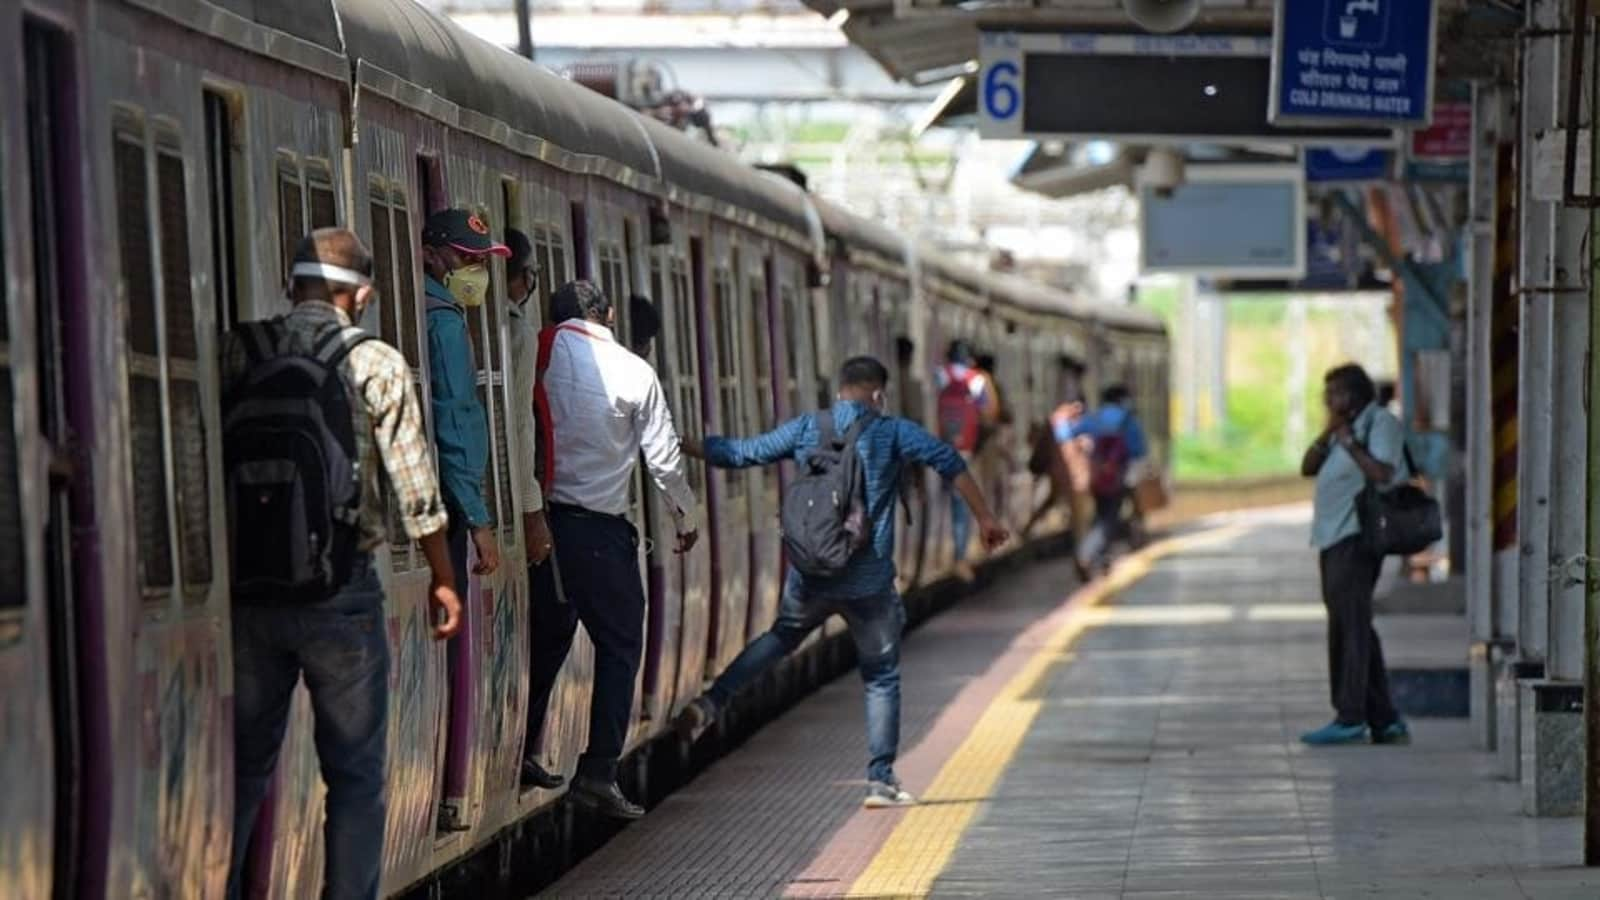 Mumbai local train: Students under 18 years can commute using local trains from today